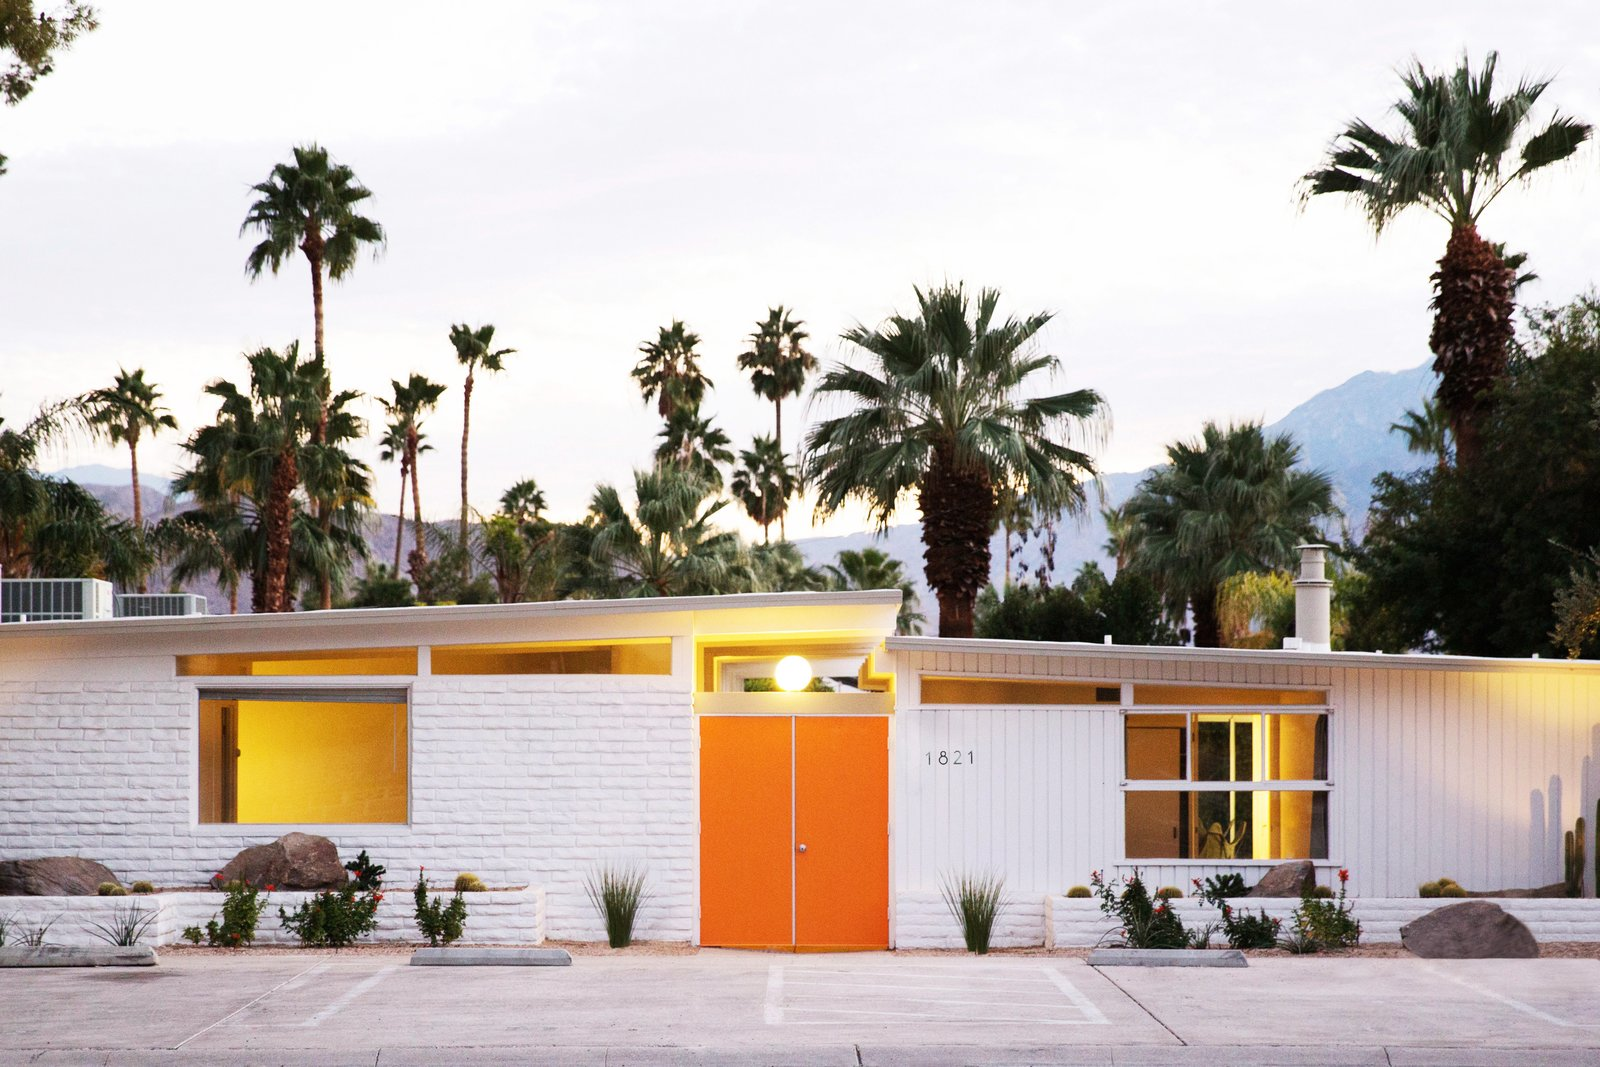 Photo 1 of 12 in A Celebrated Palm Springs Hotel Asks $1.8M